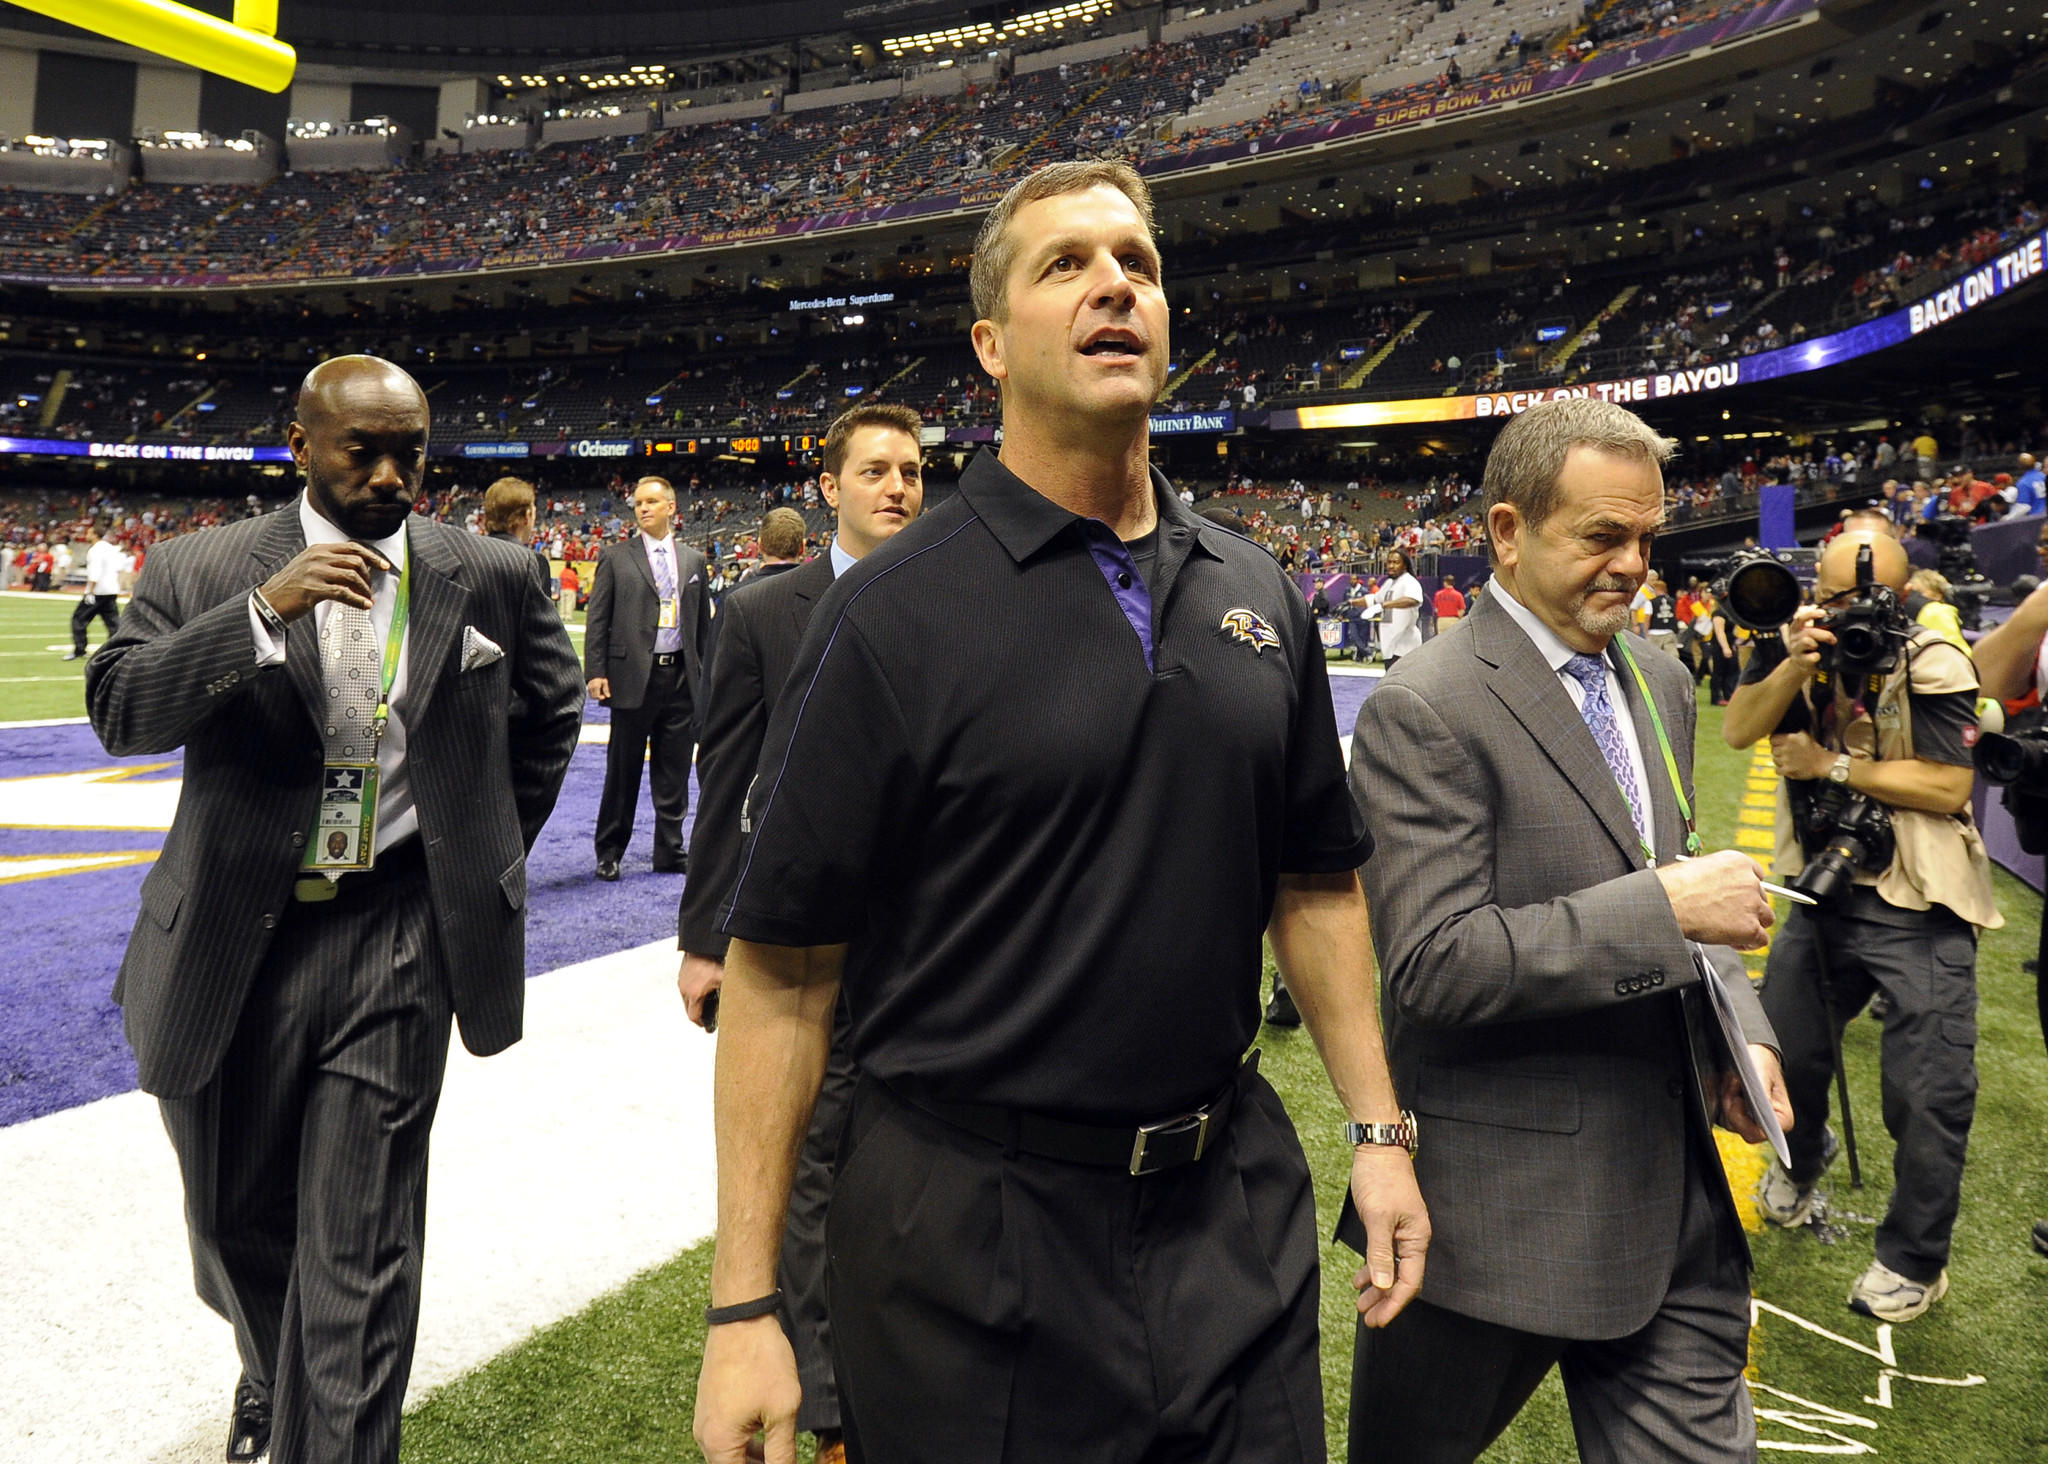 A bronze, full-body image depicting John Harbaugh coaching Ravens' Super Bowl XLVII victory will be erected at his alma mater.